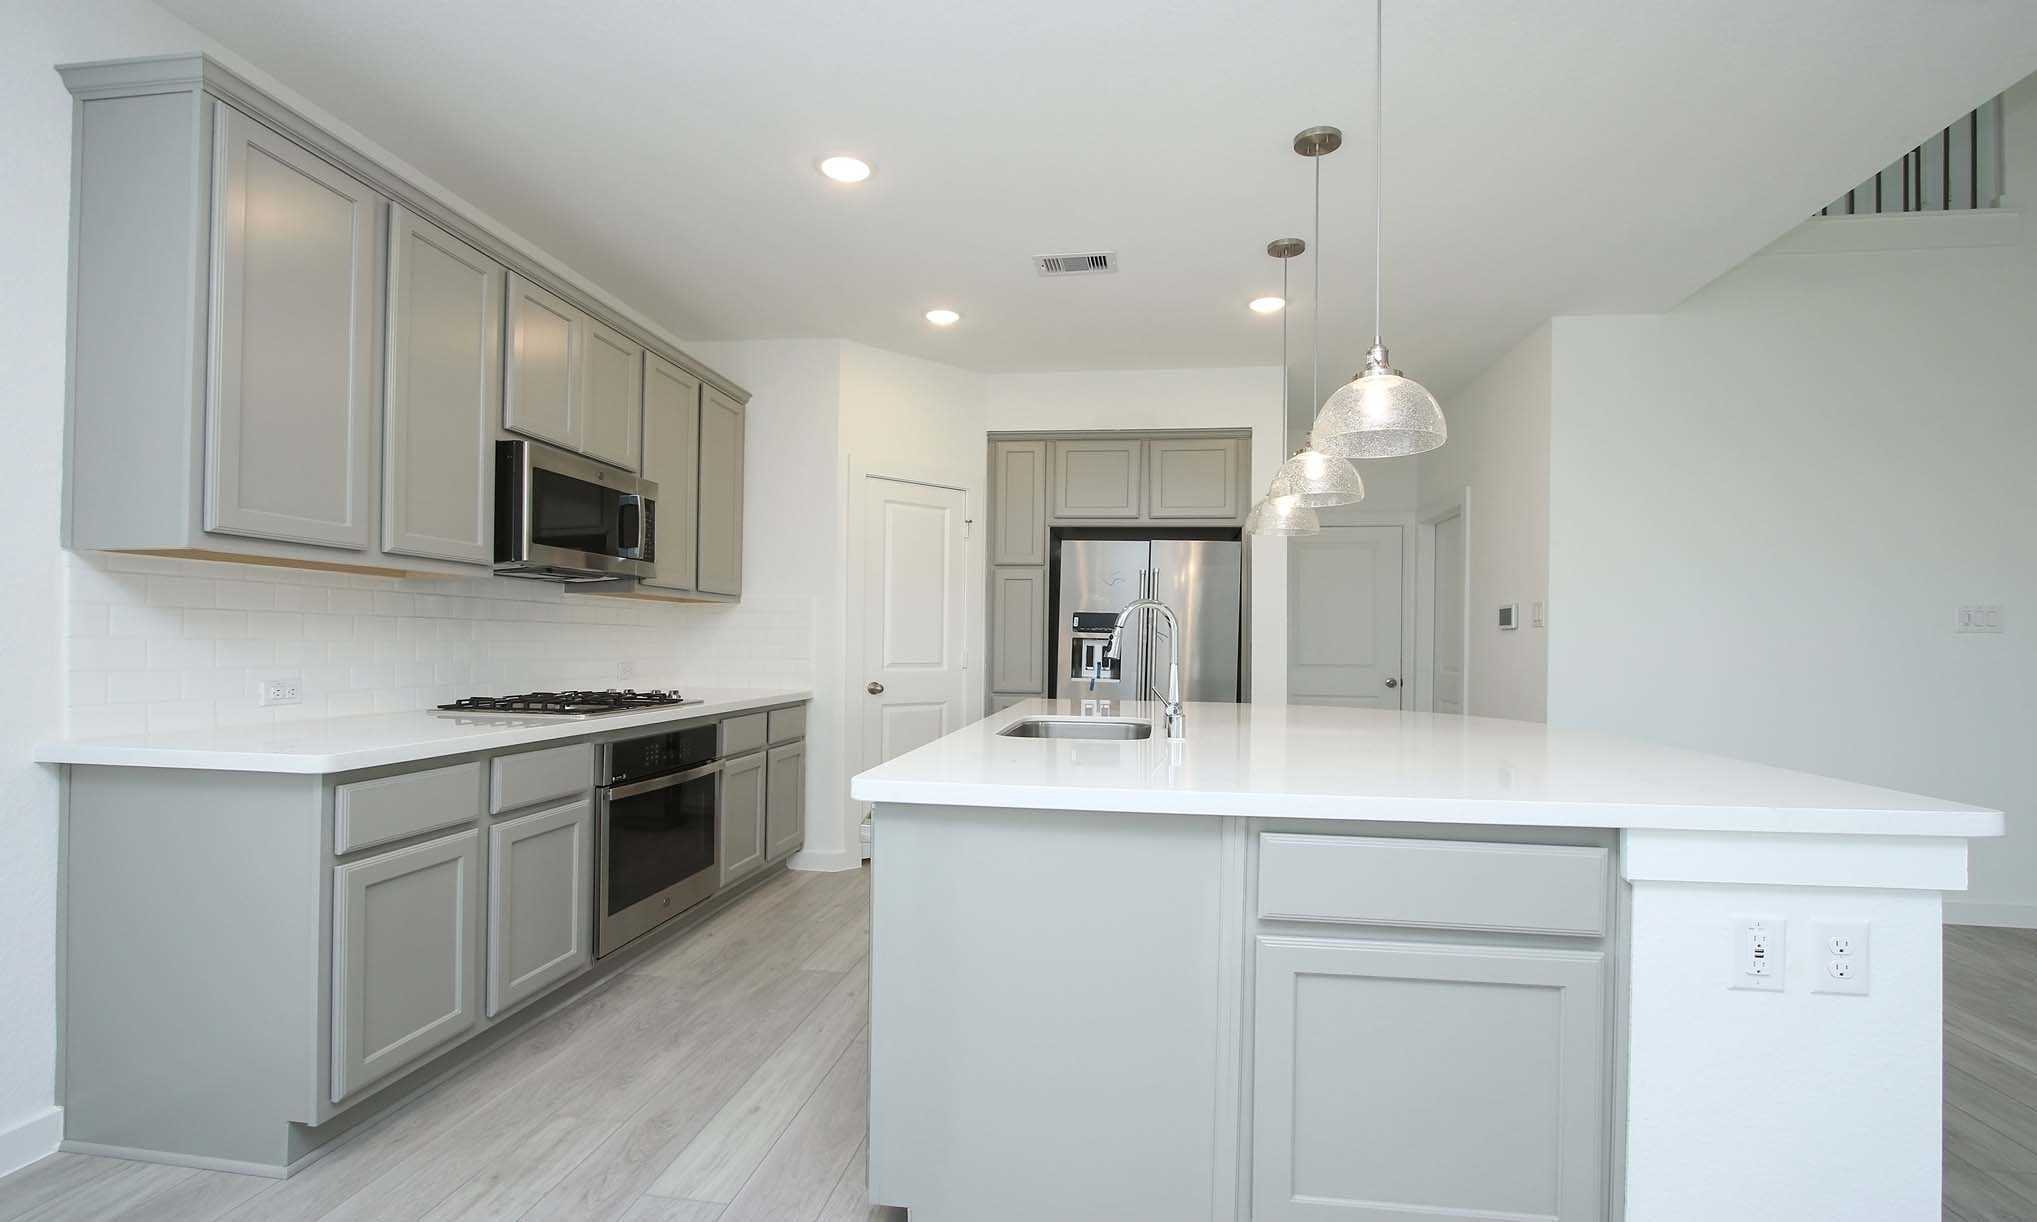 Kitchen featured in the Plan Lyndhurst By Highland Homes in Sherman-Denison, TX